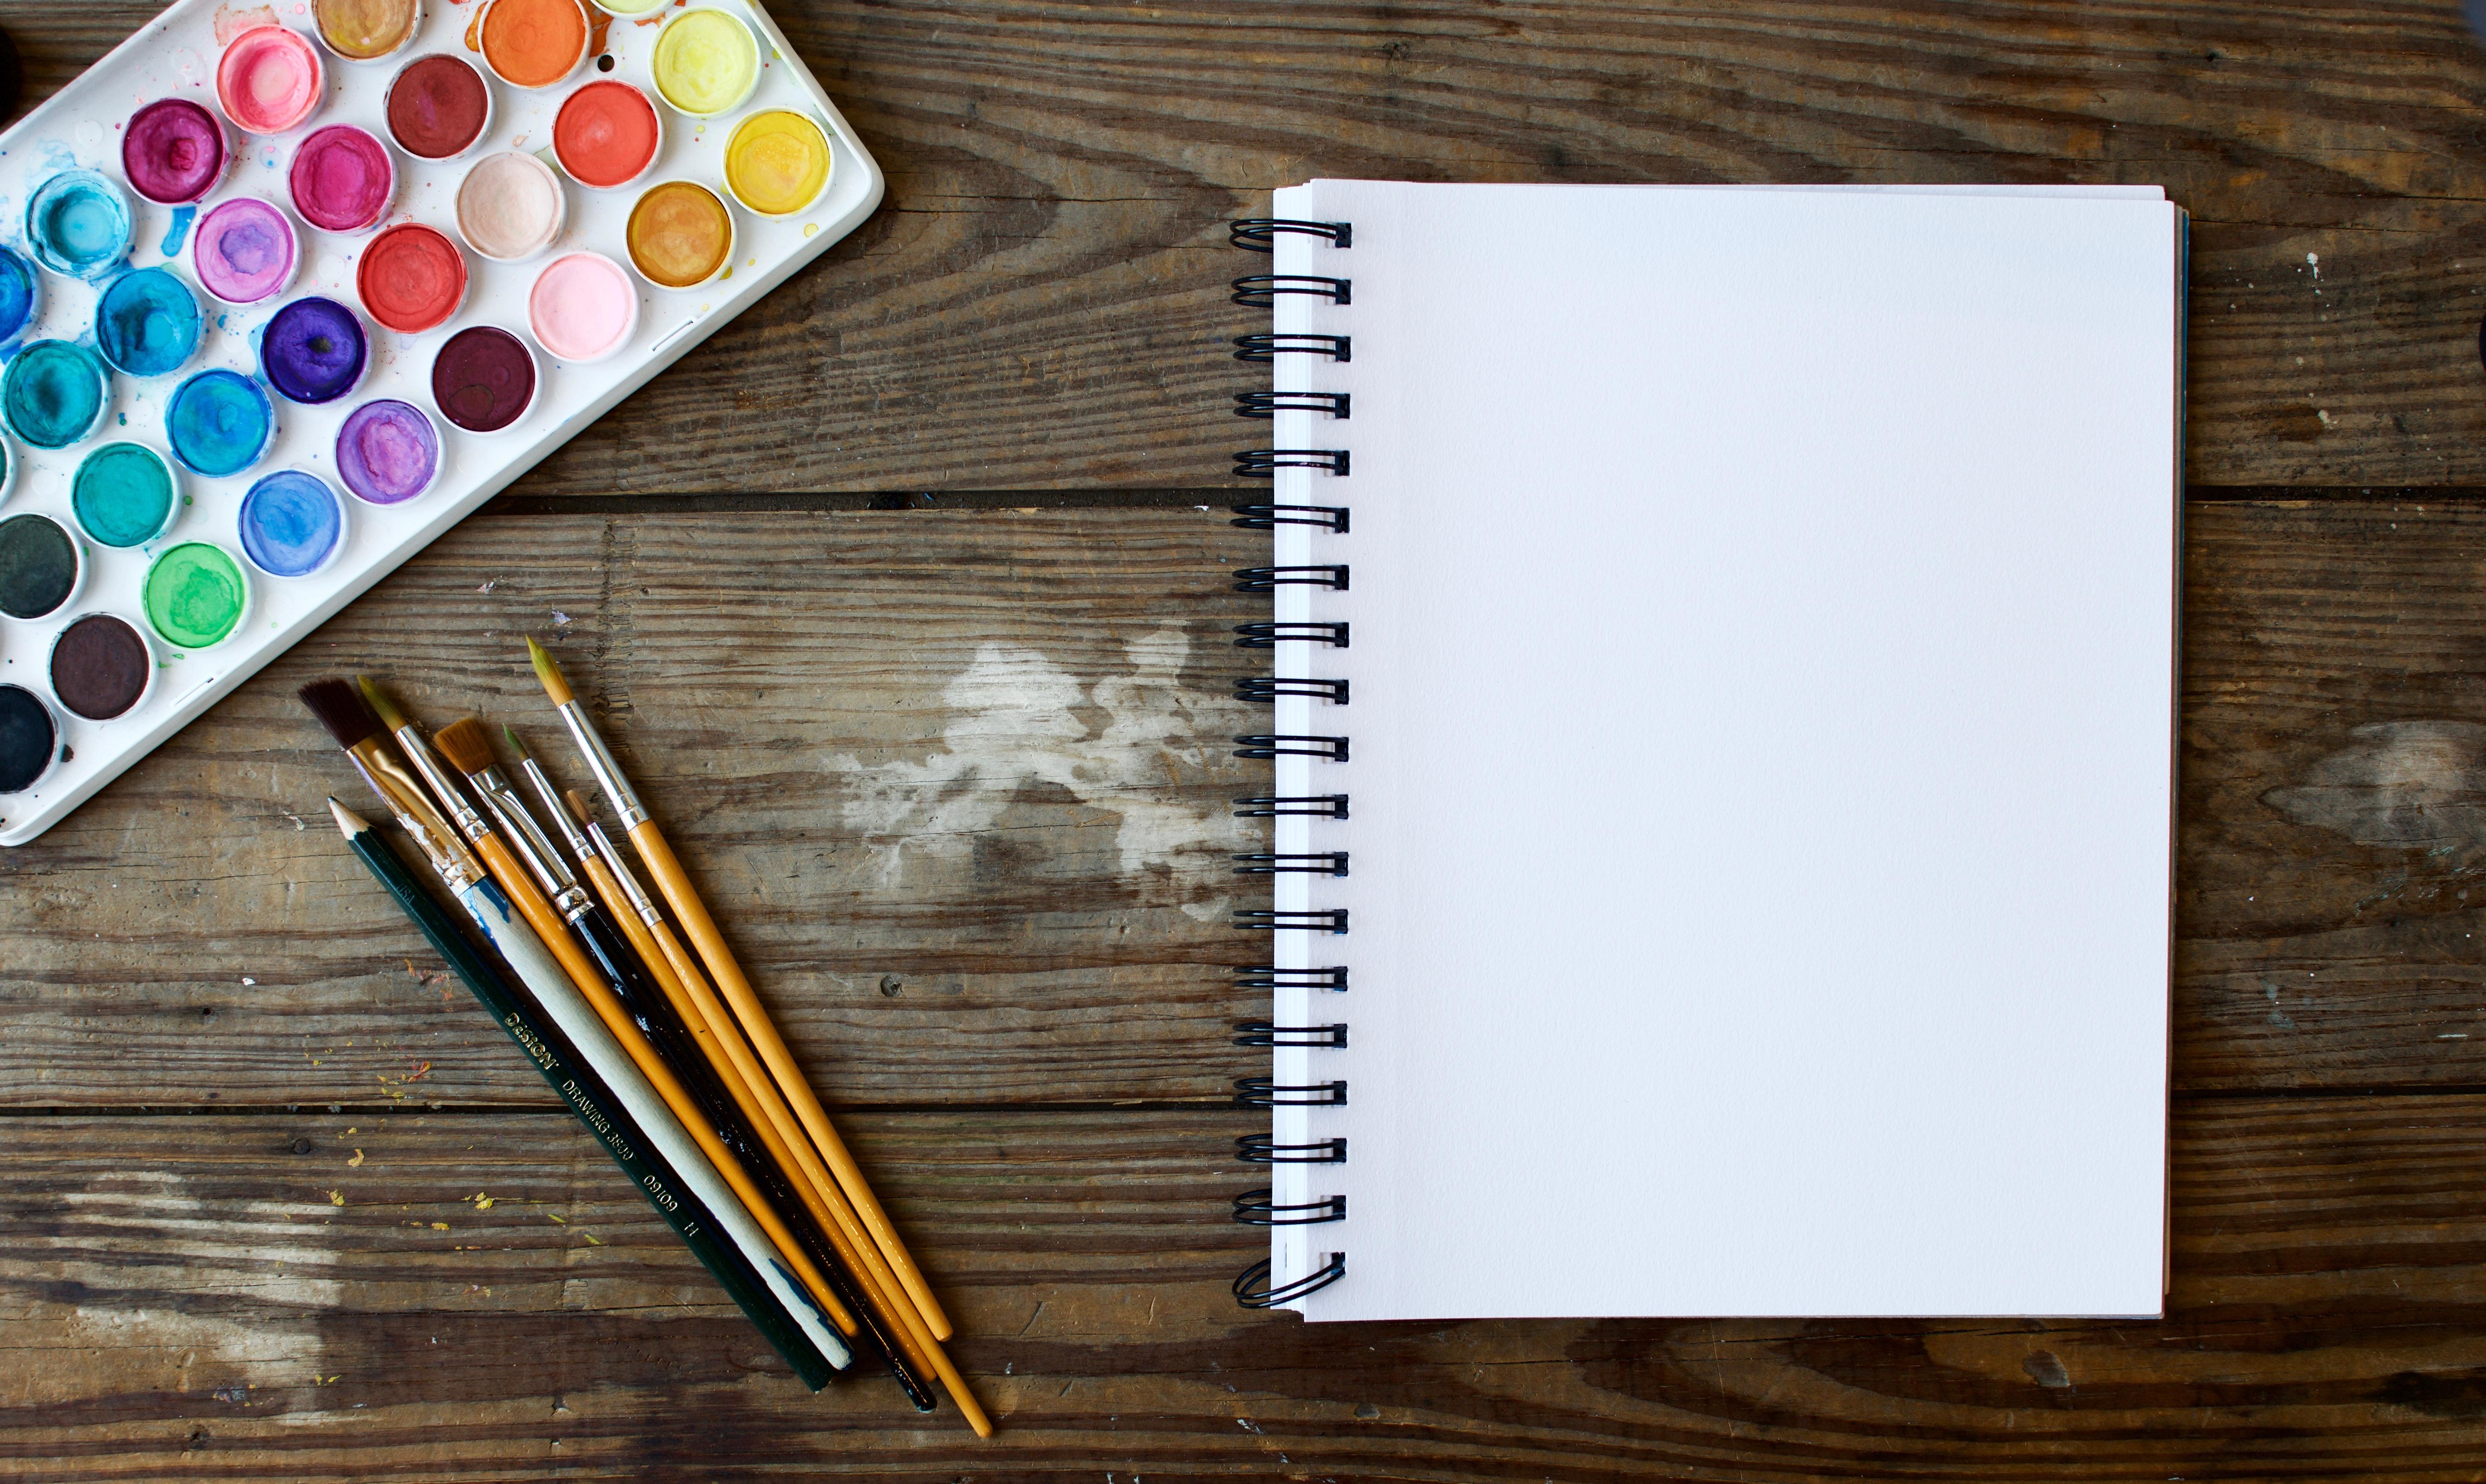 blank journal ready for content with brushes and paints